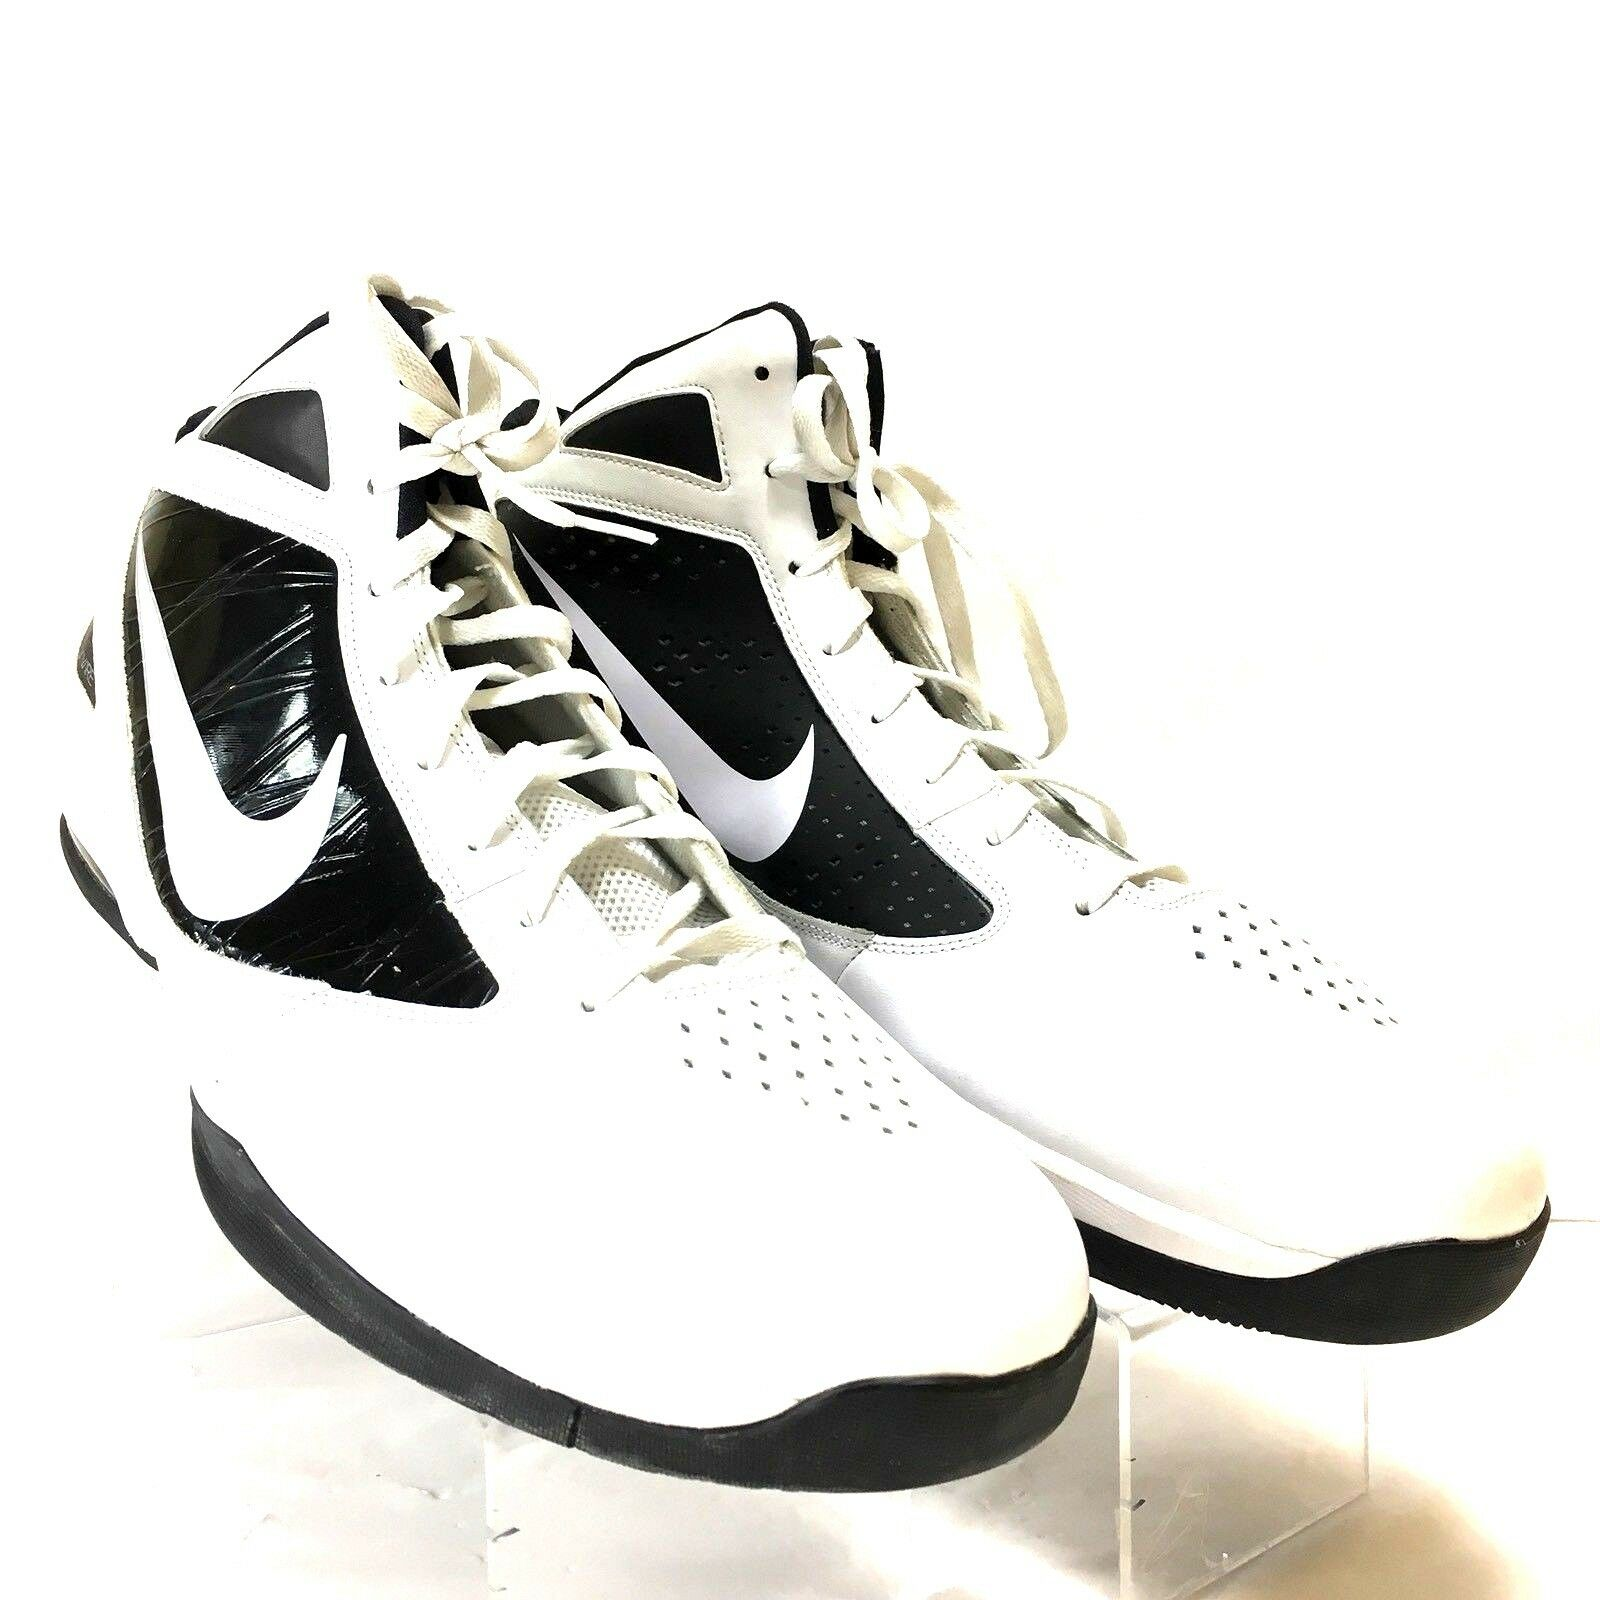 NIKE AIR MAX White/Black Size 20M FLYWIRE 454140-100 Athletic Shoes S9